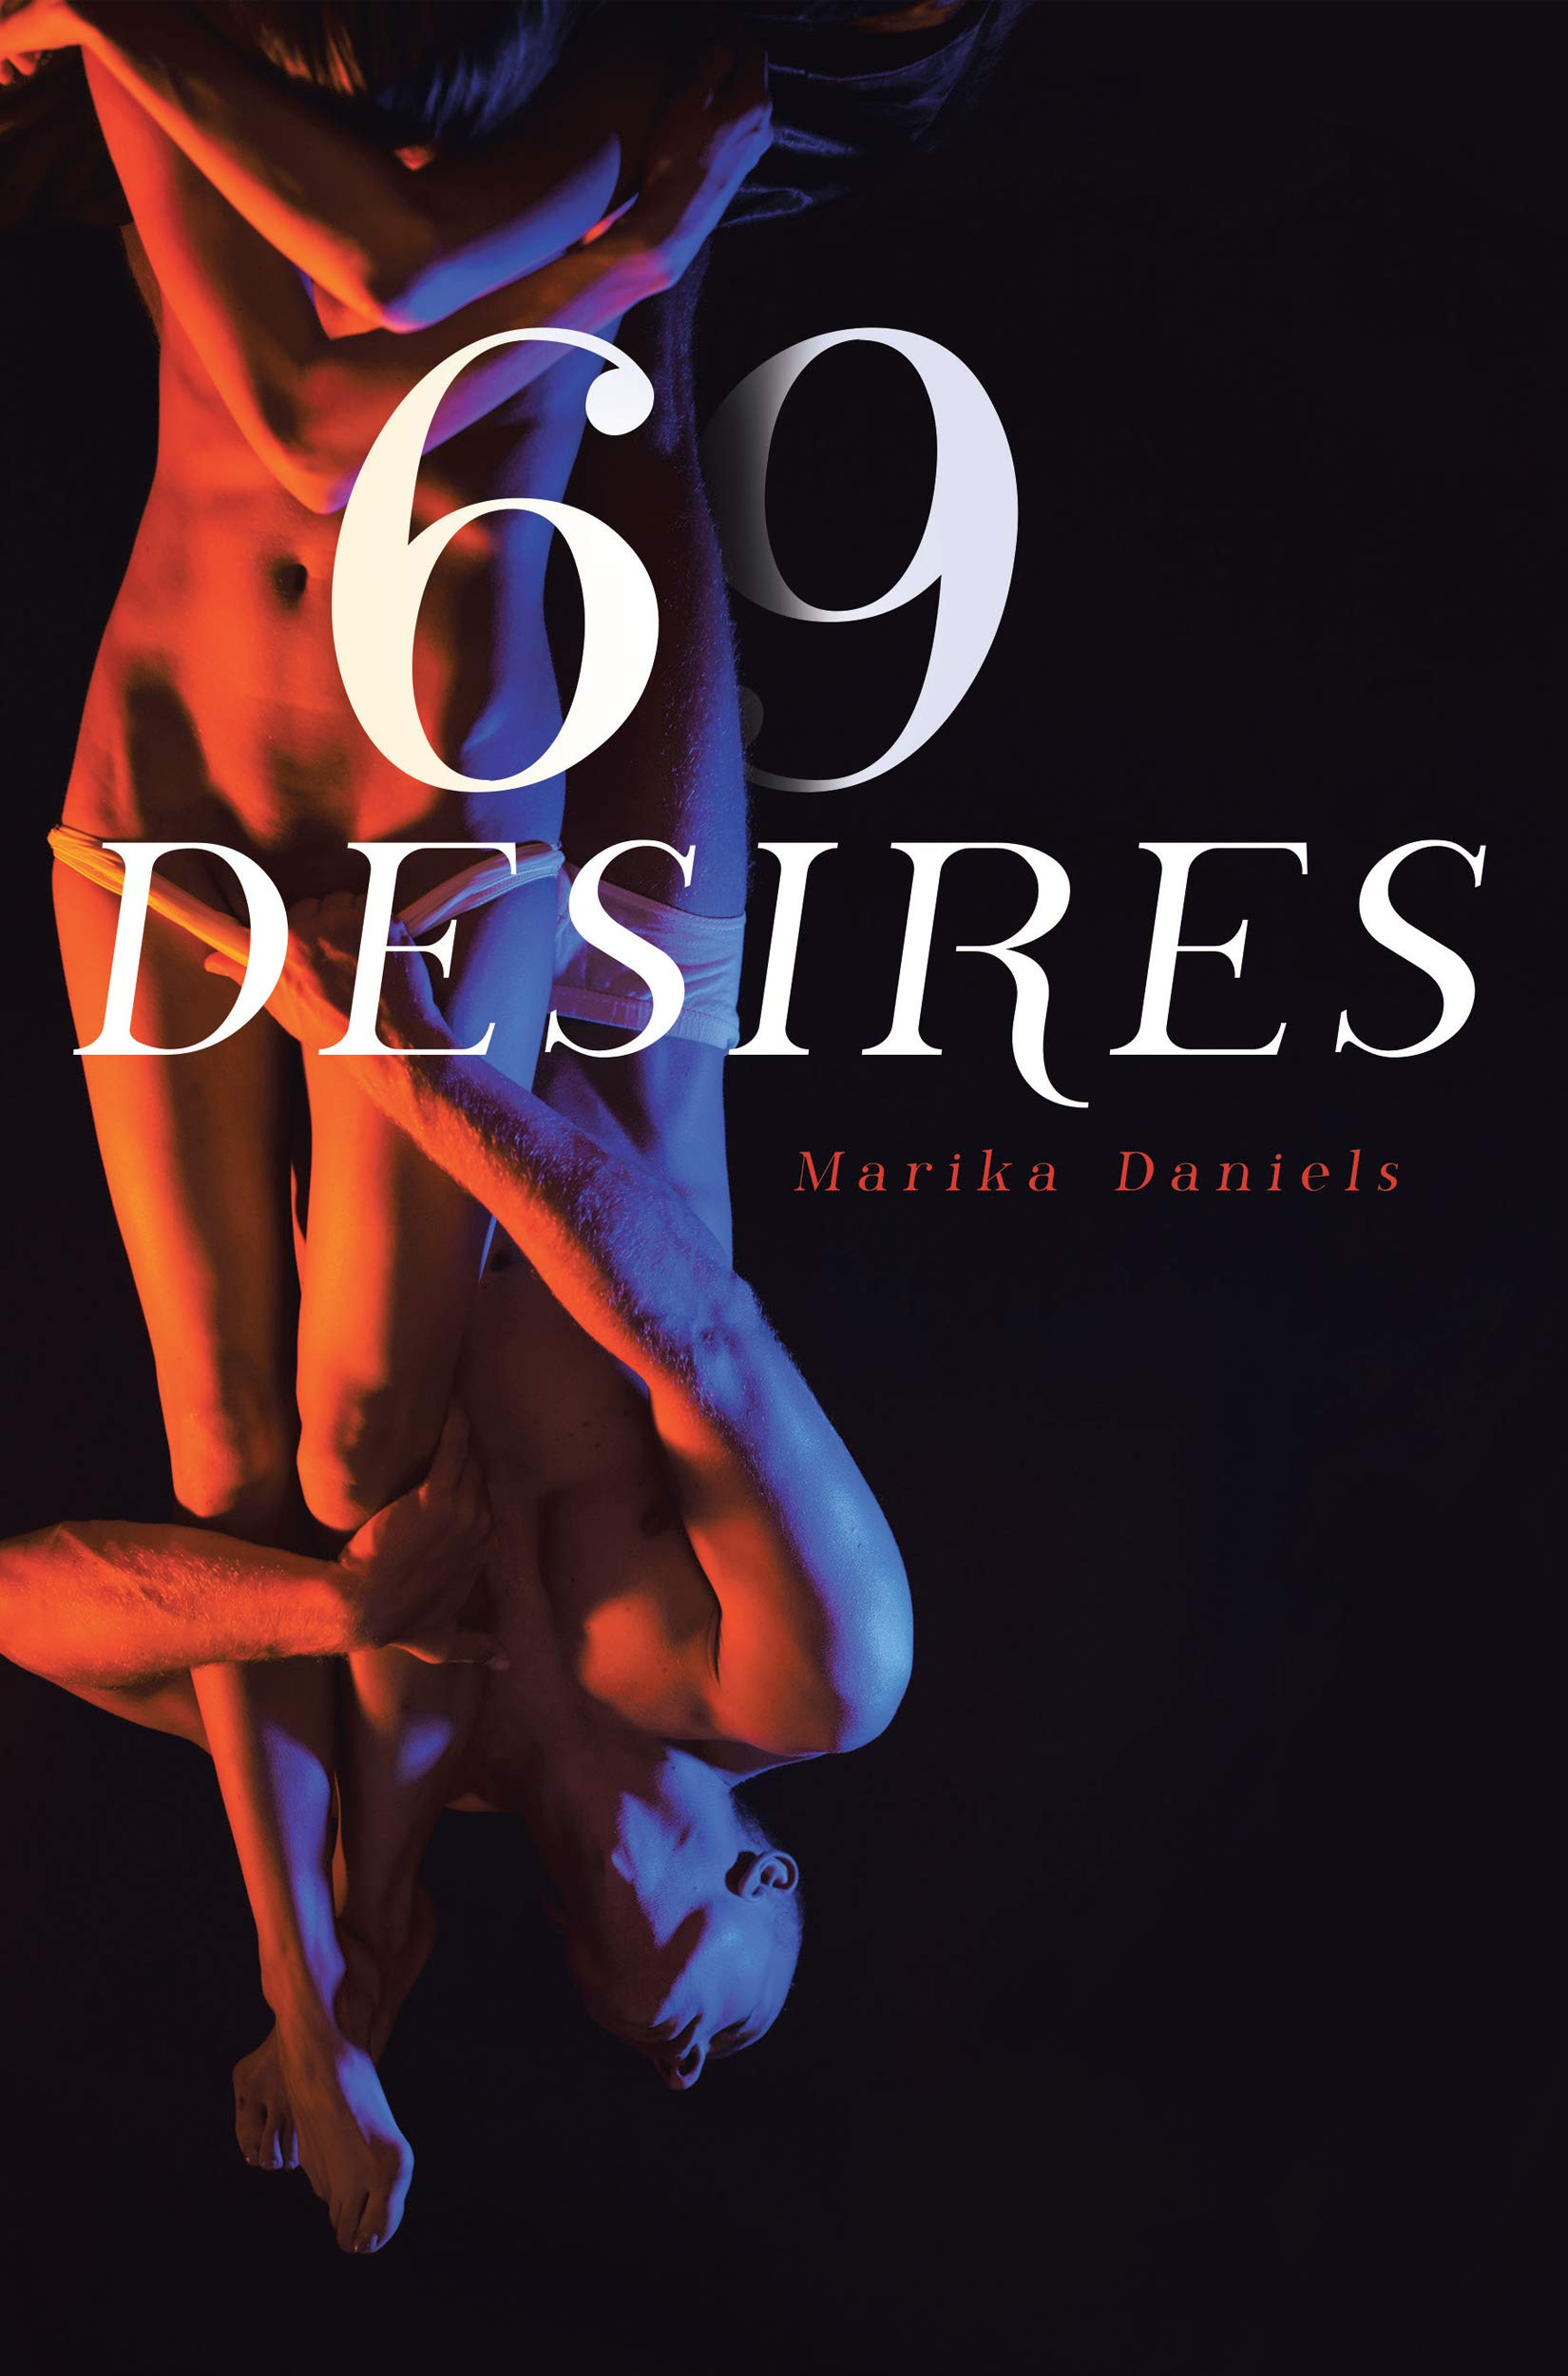 69 Desires : Erotica Novels about Submission, Seduction, BDSM Concepts, Lesbians sex, Dirty Talk and Threesome Bundle For Horny Adults (Submissive and ... and Erotica Sex Stories Audiobooks Book 6)